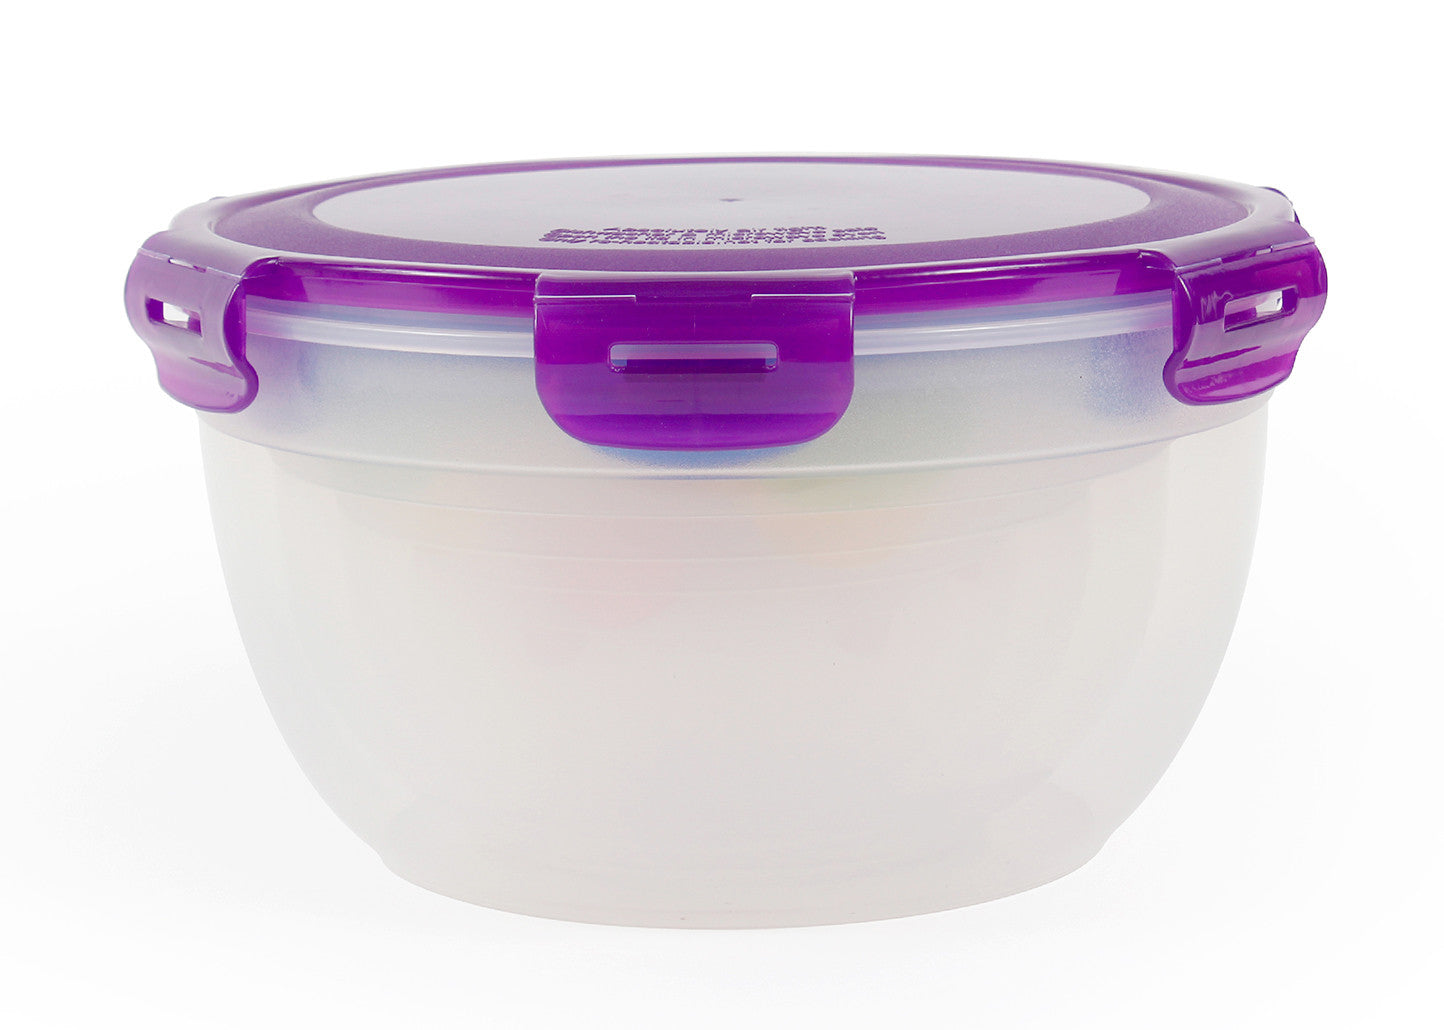 Neoflam Food Storage Plastic Bowls With Lids, 12 Piece Set   Kitchen  Foundations, Nestable, Stackable, BPA Free, Snap Lock, Airtight, Rainbow,  Mixing, Food ...